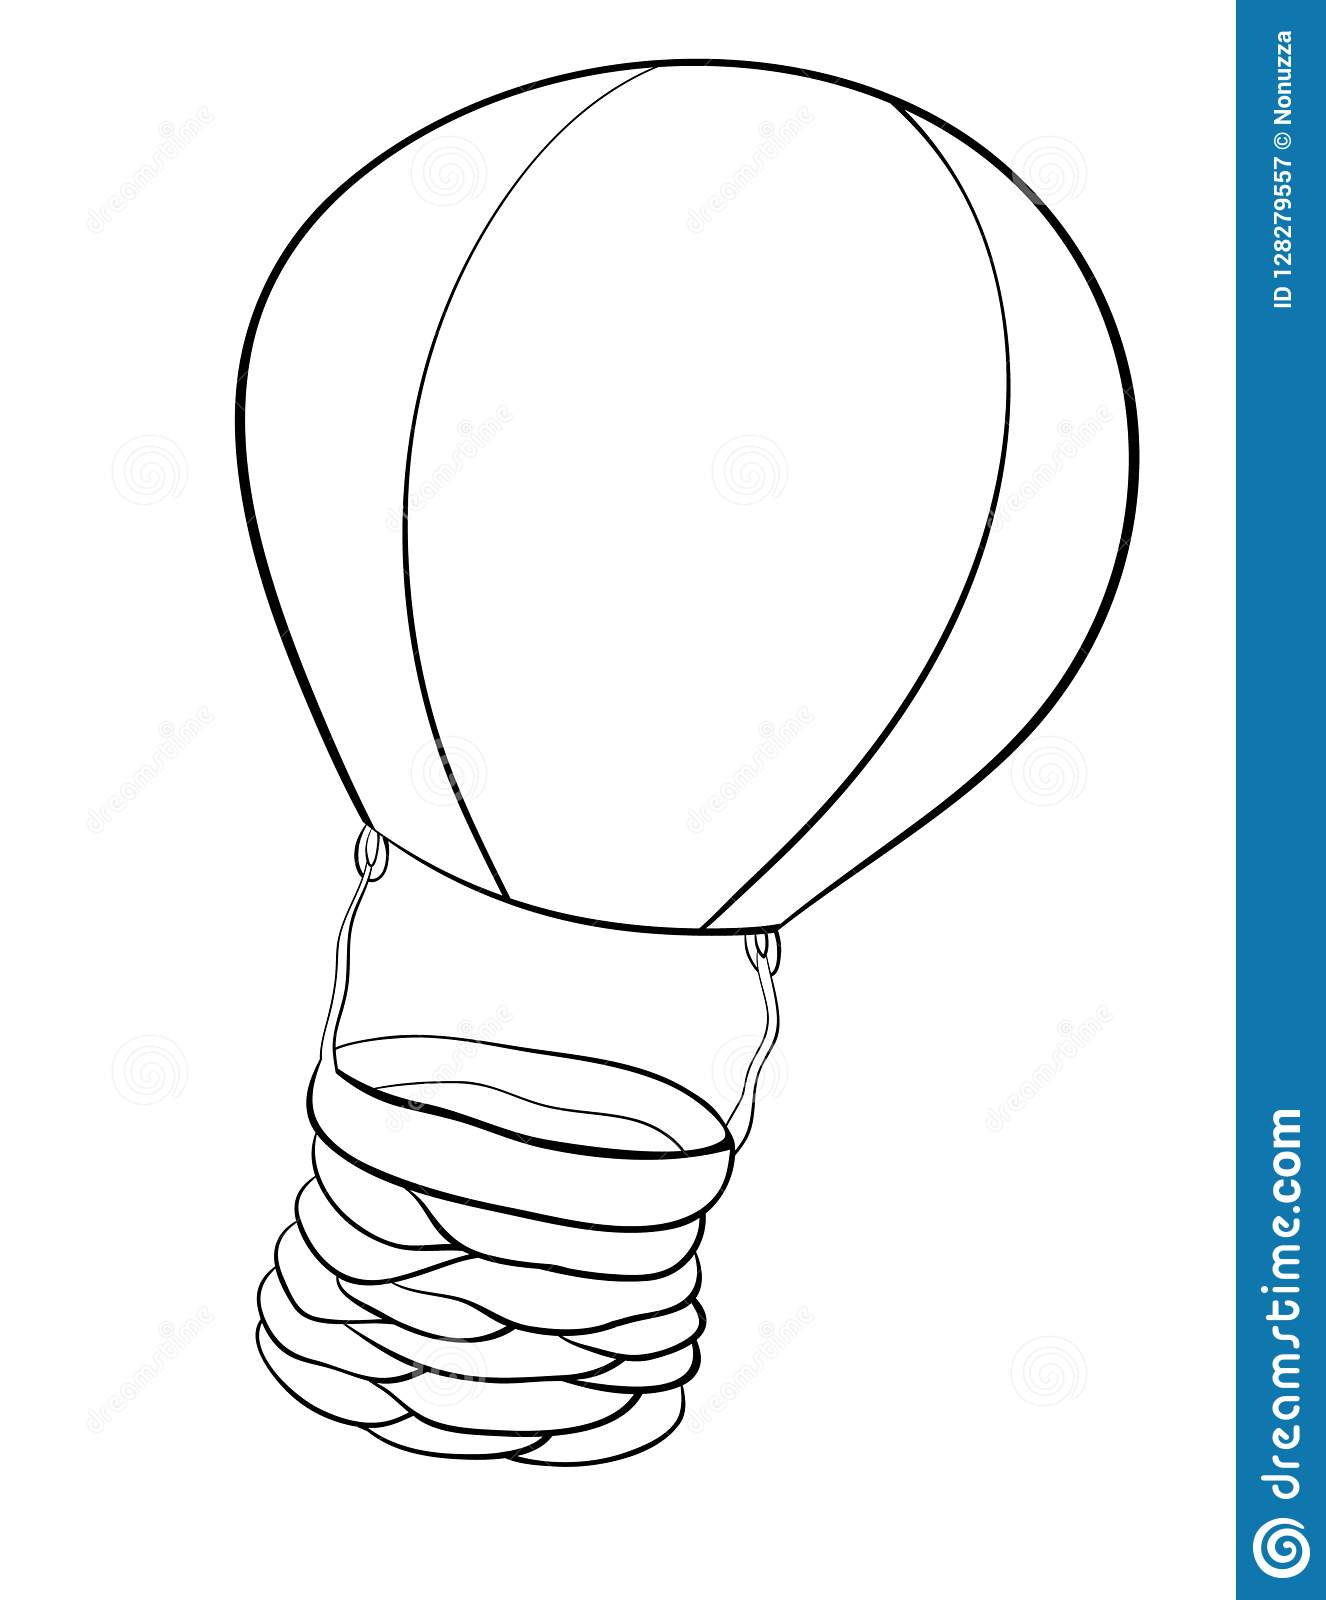 A coloring page,book an air ballon image for children.Line art style illustration.